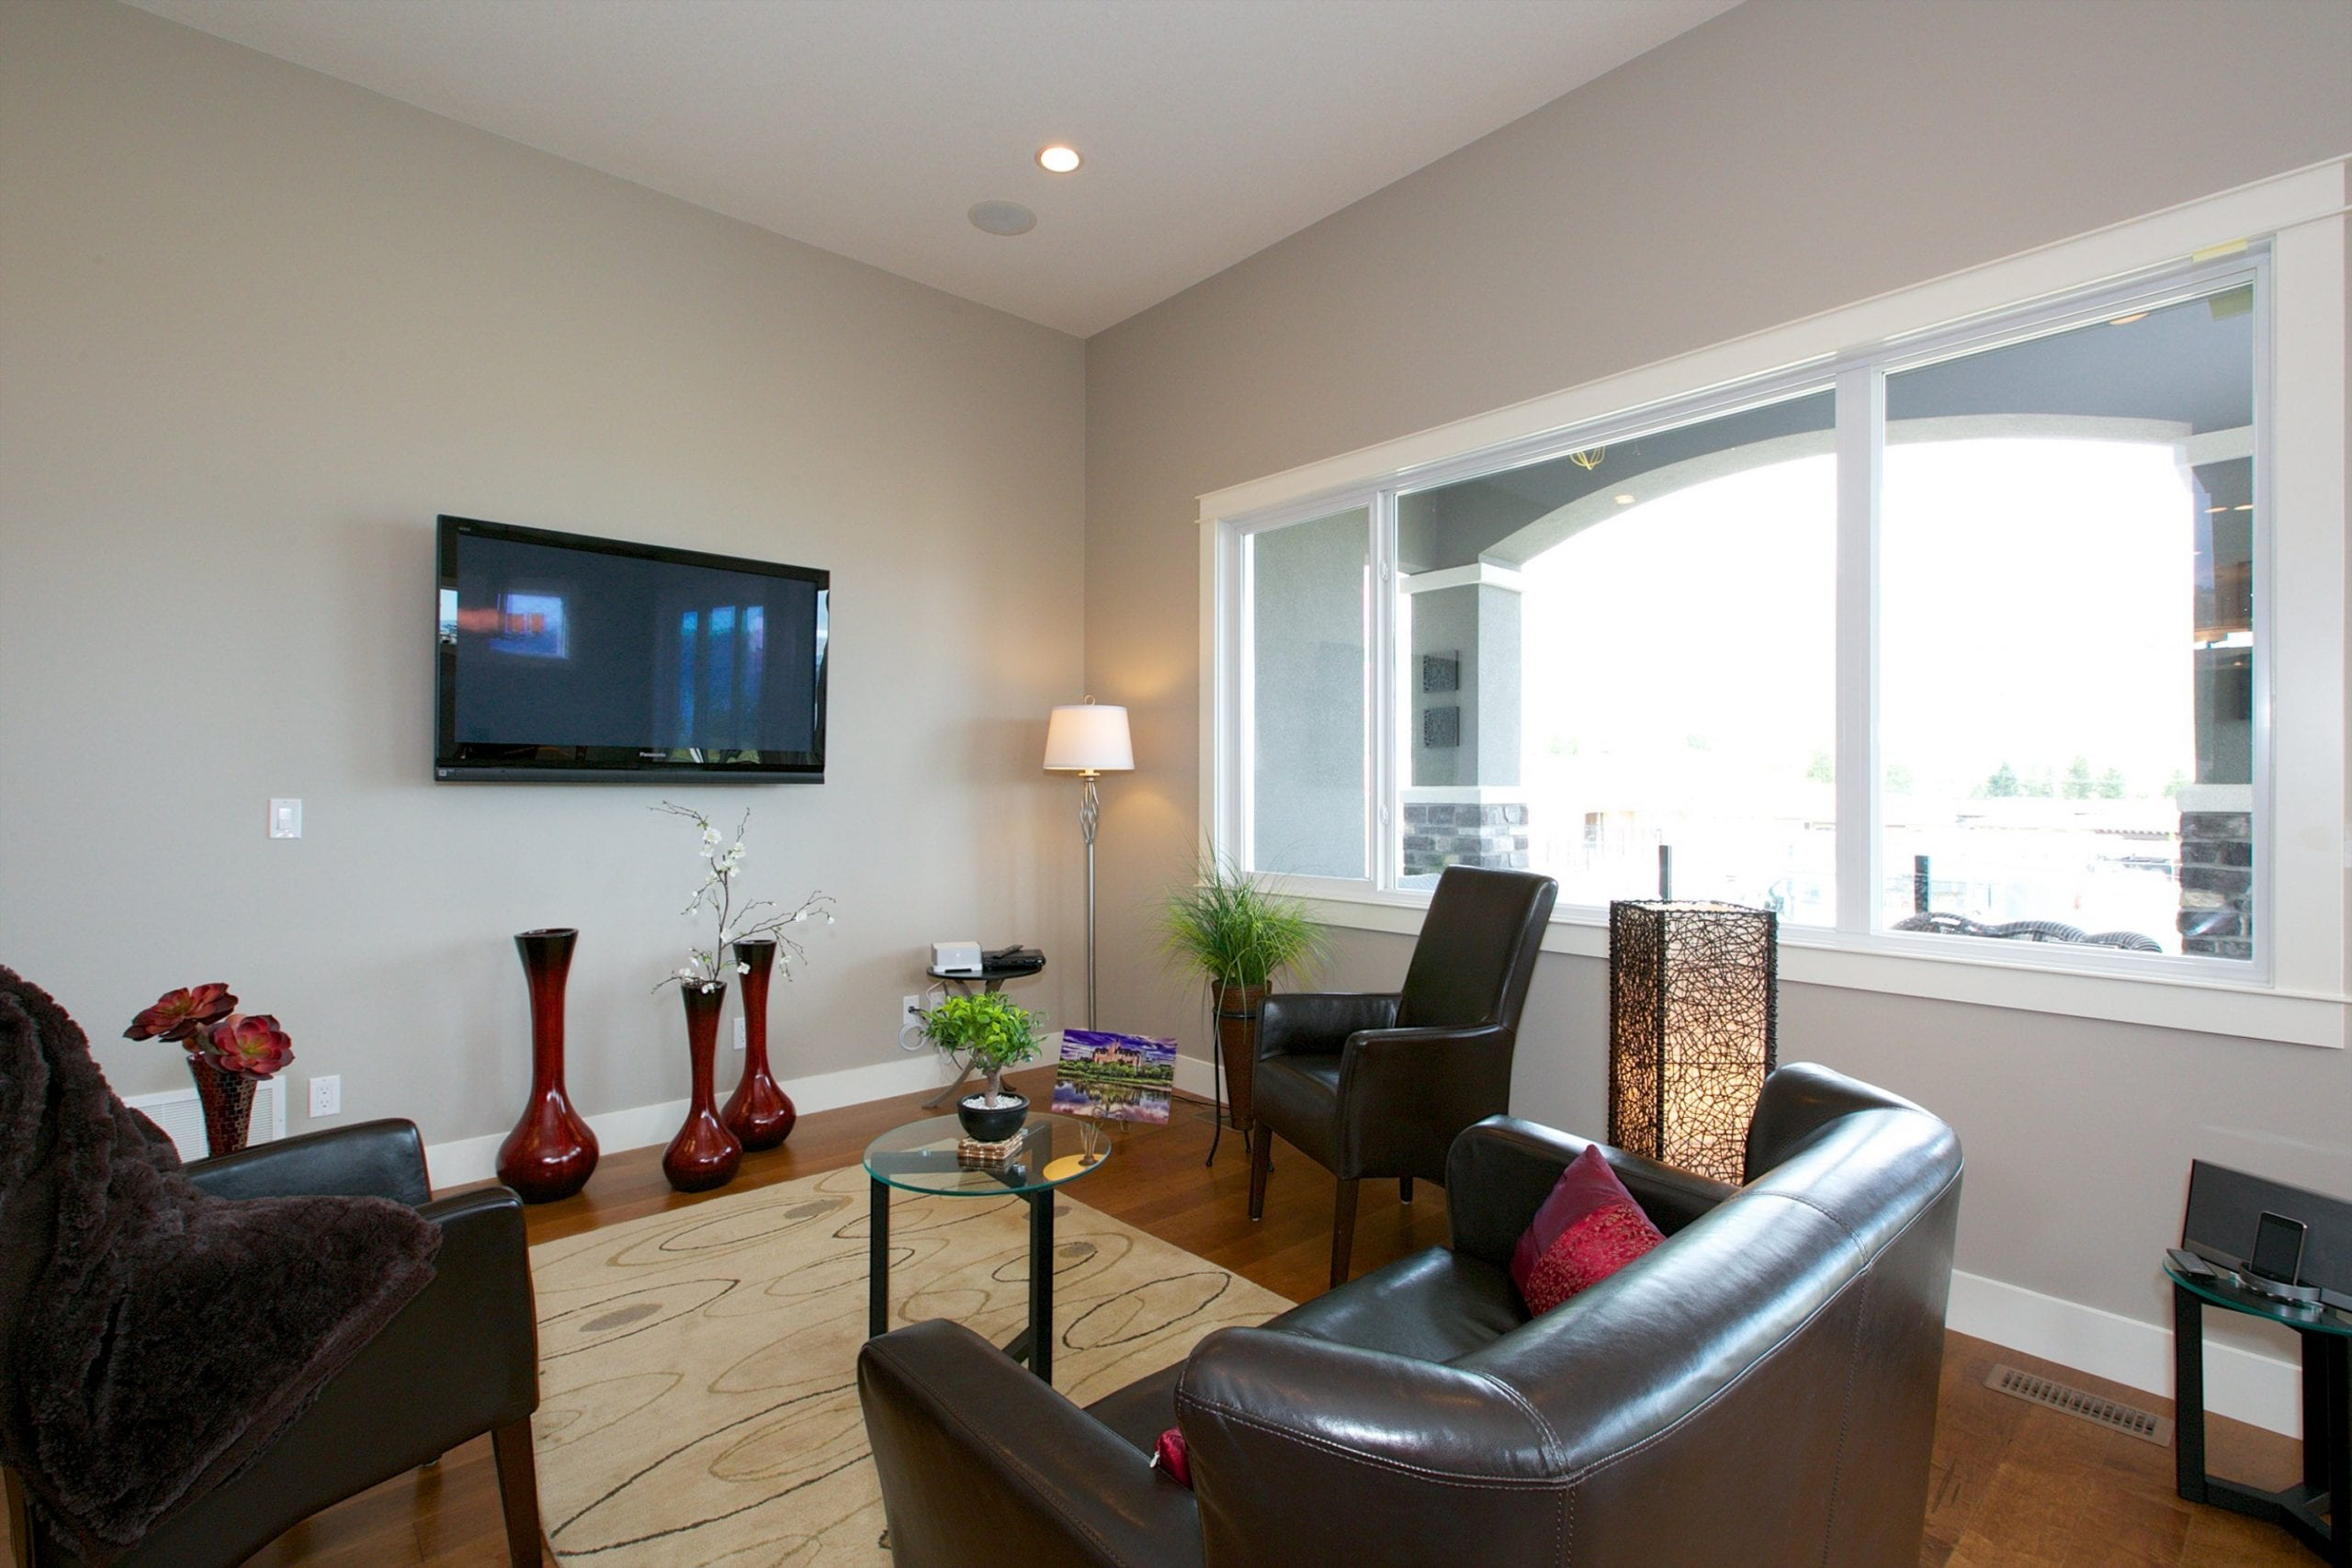 interior shot of west harbour home family room with small mounted television a couch and two chairs and a large window